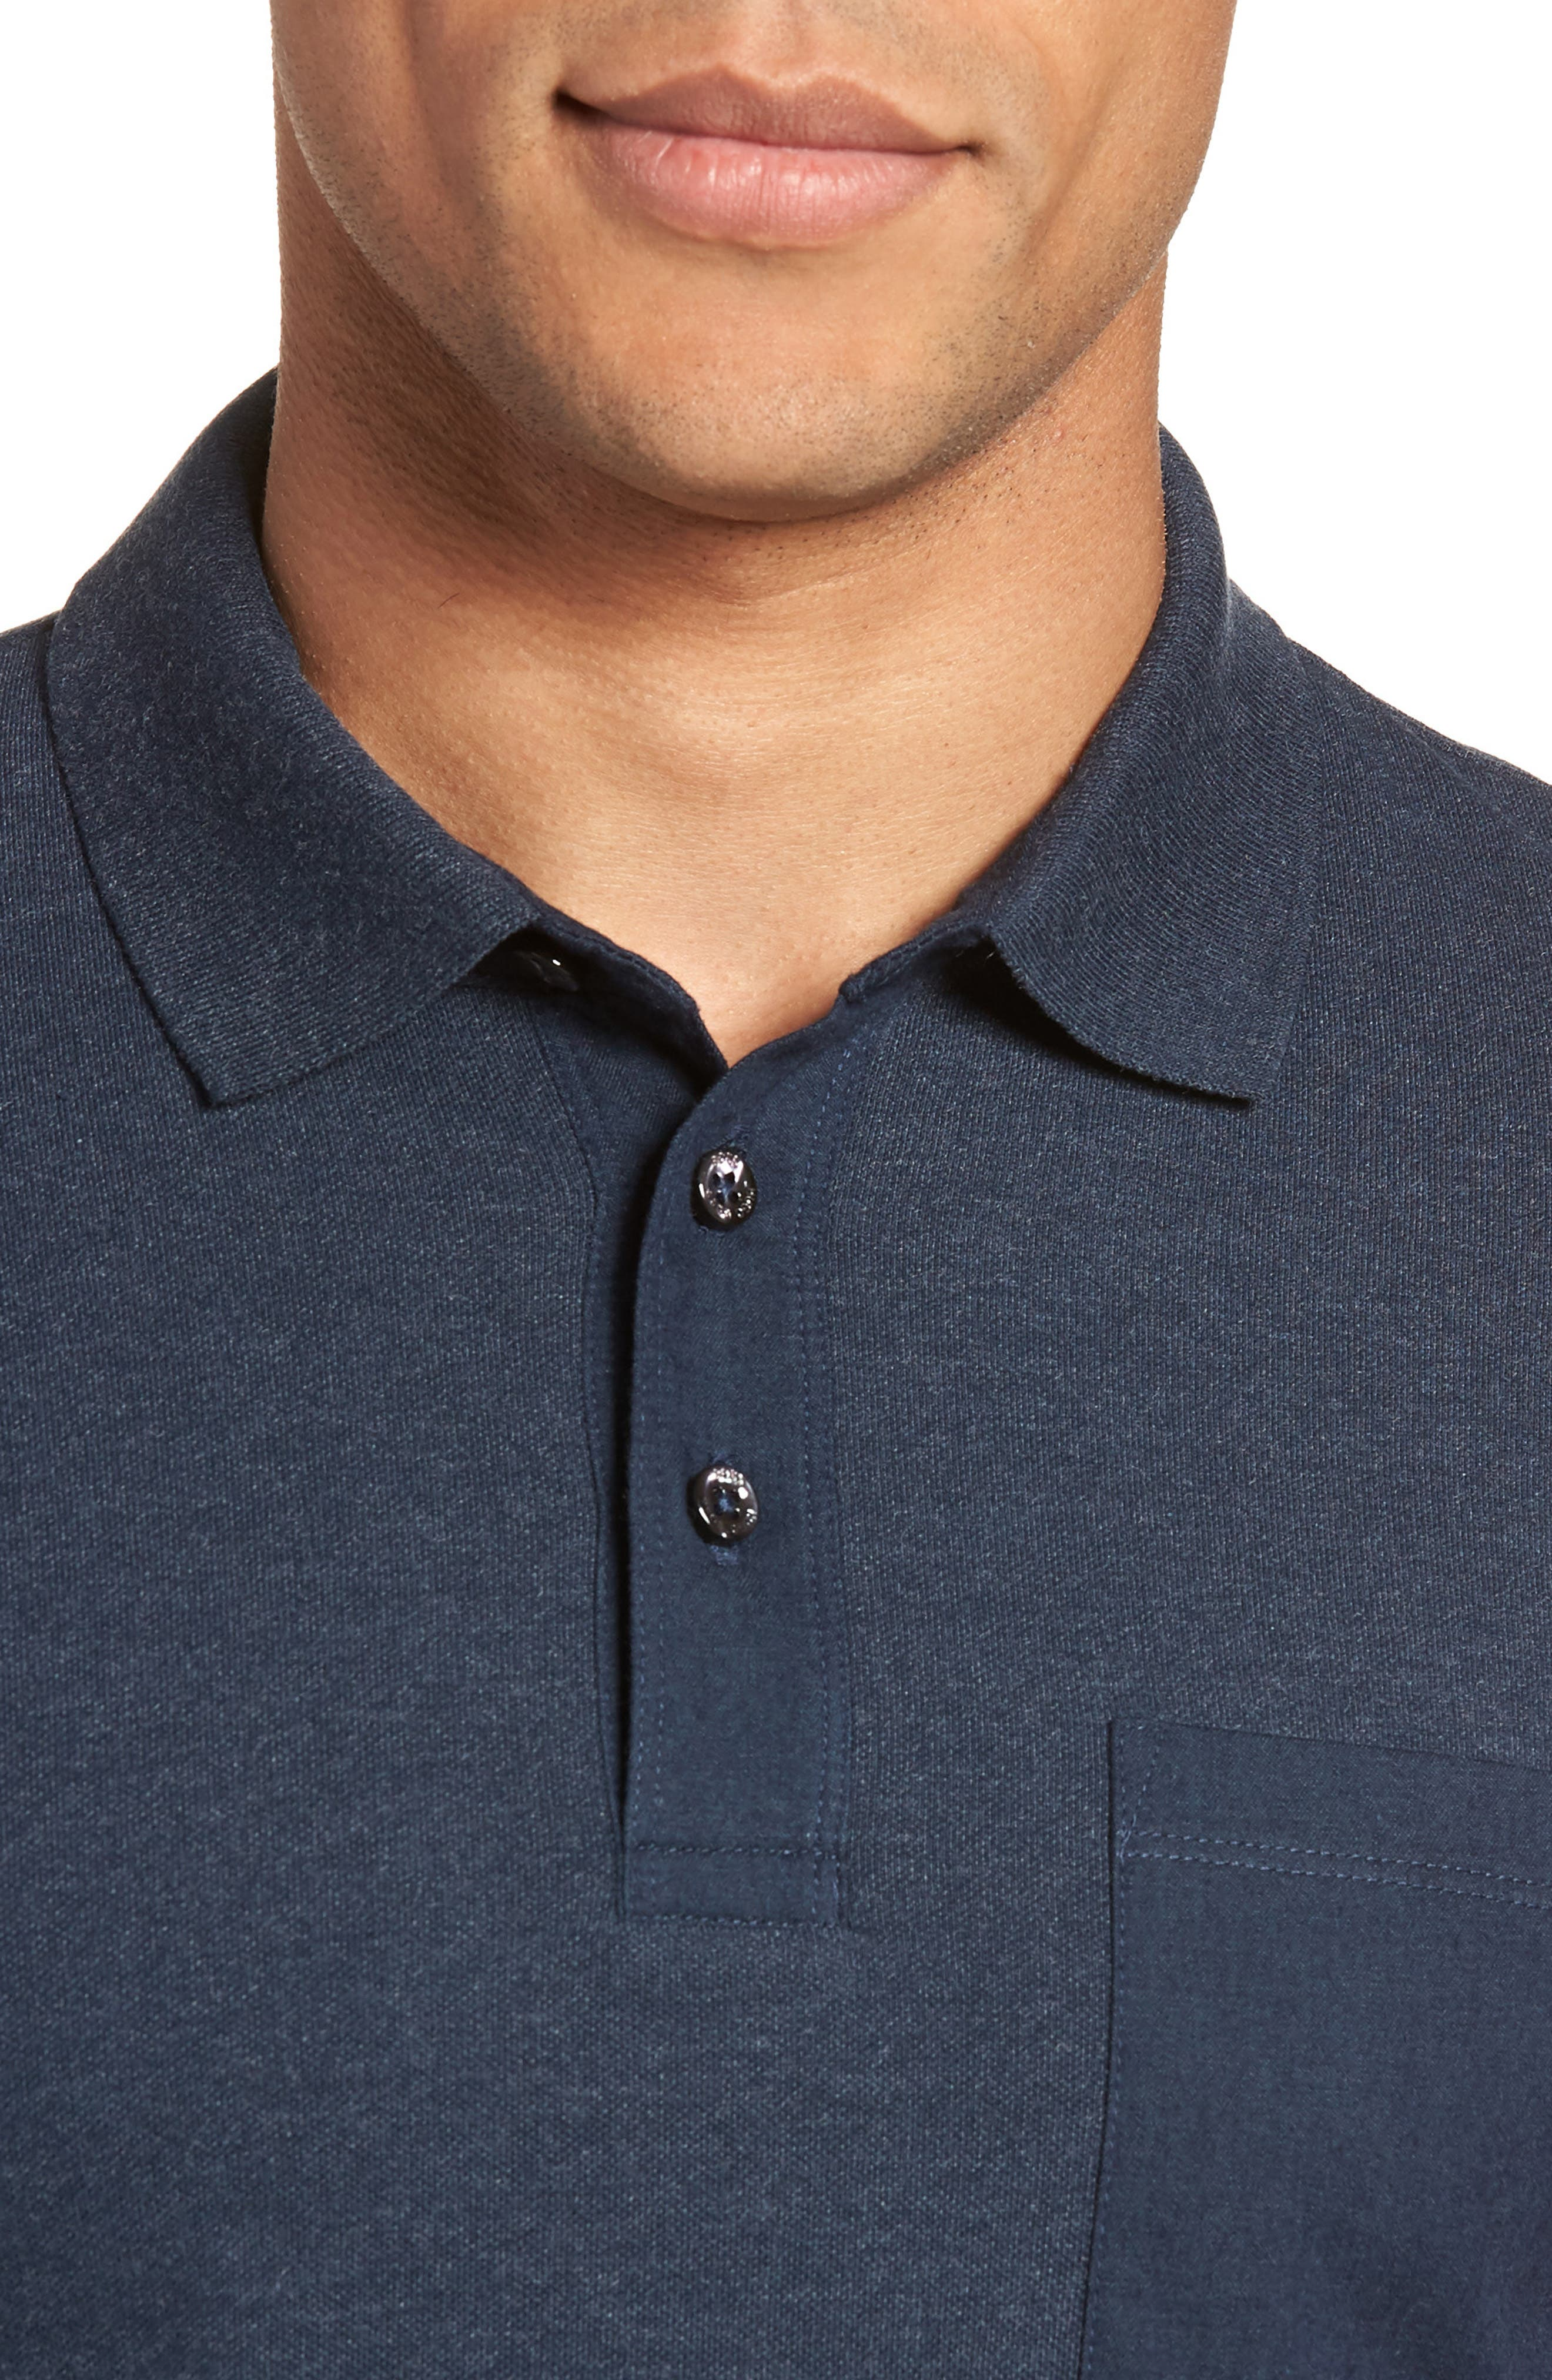 Penrose Polo Shirt,                             Alternate thumbnail 4, color,                             410